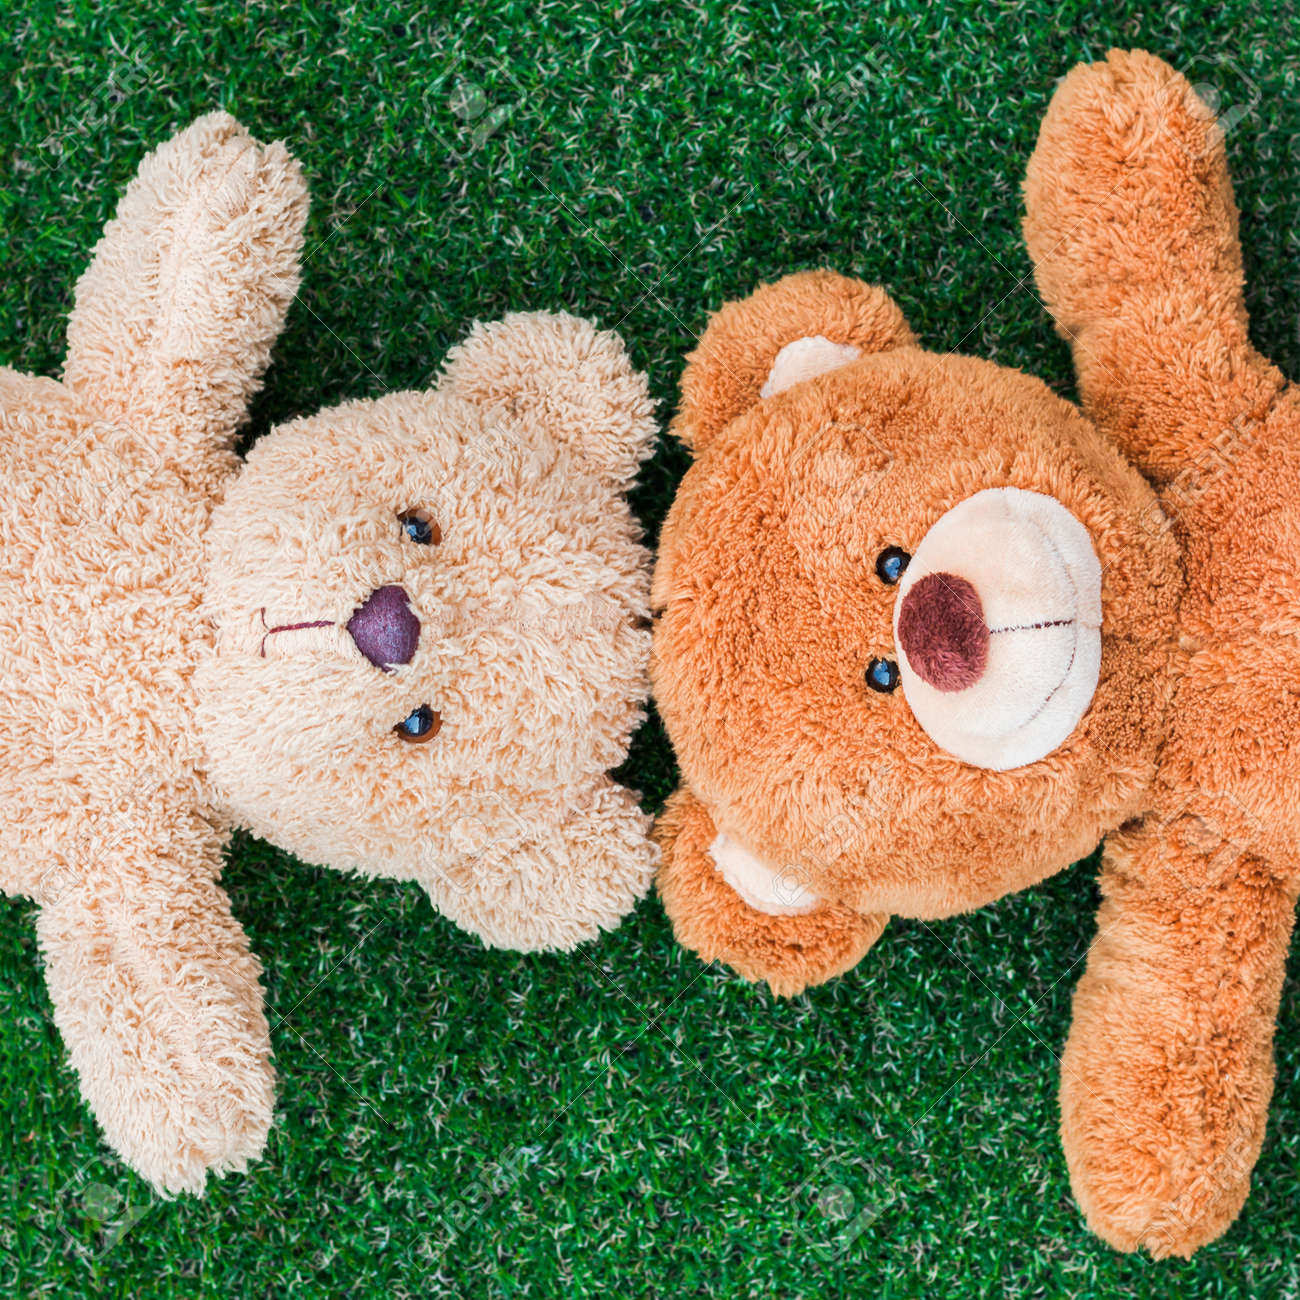 cute teddy bears on green grass background stock photo picture and